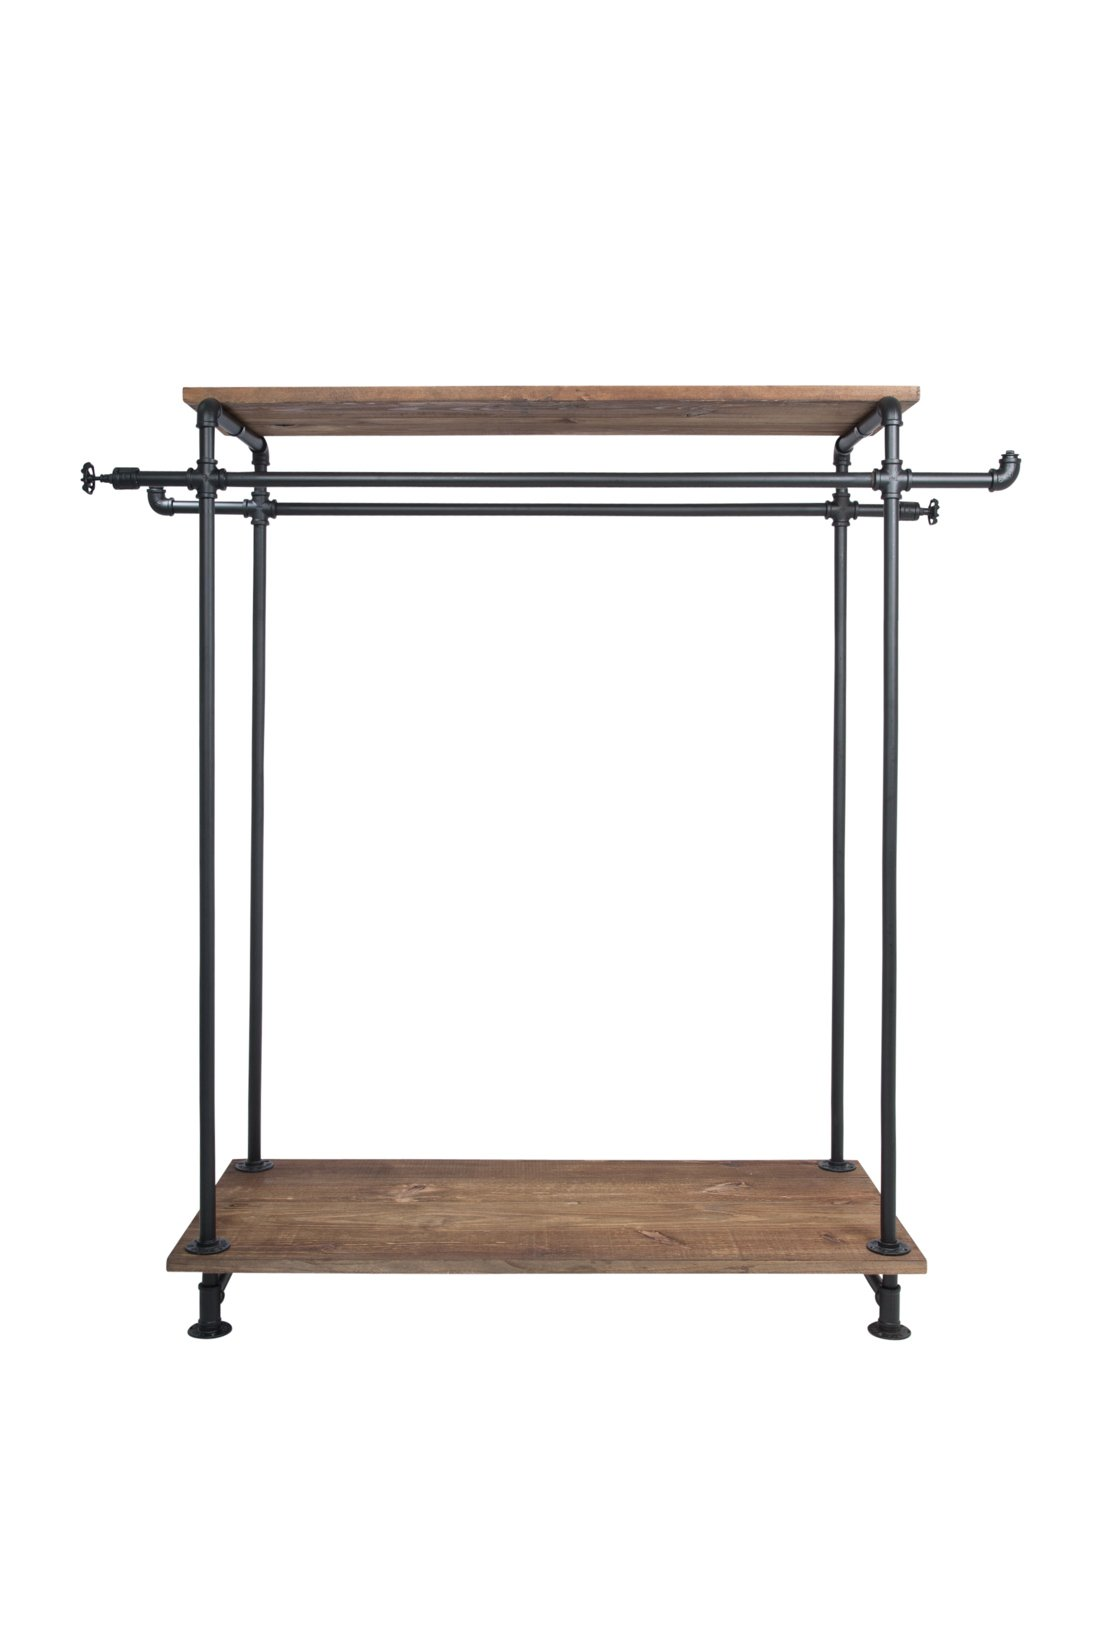 Newtech Display IND-R5/BLK Double Sized Rack with Wood Top and Base, Black